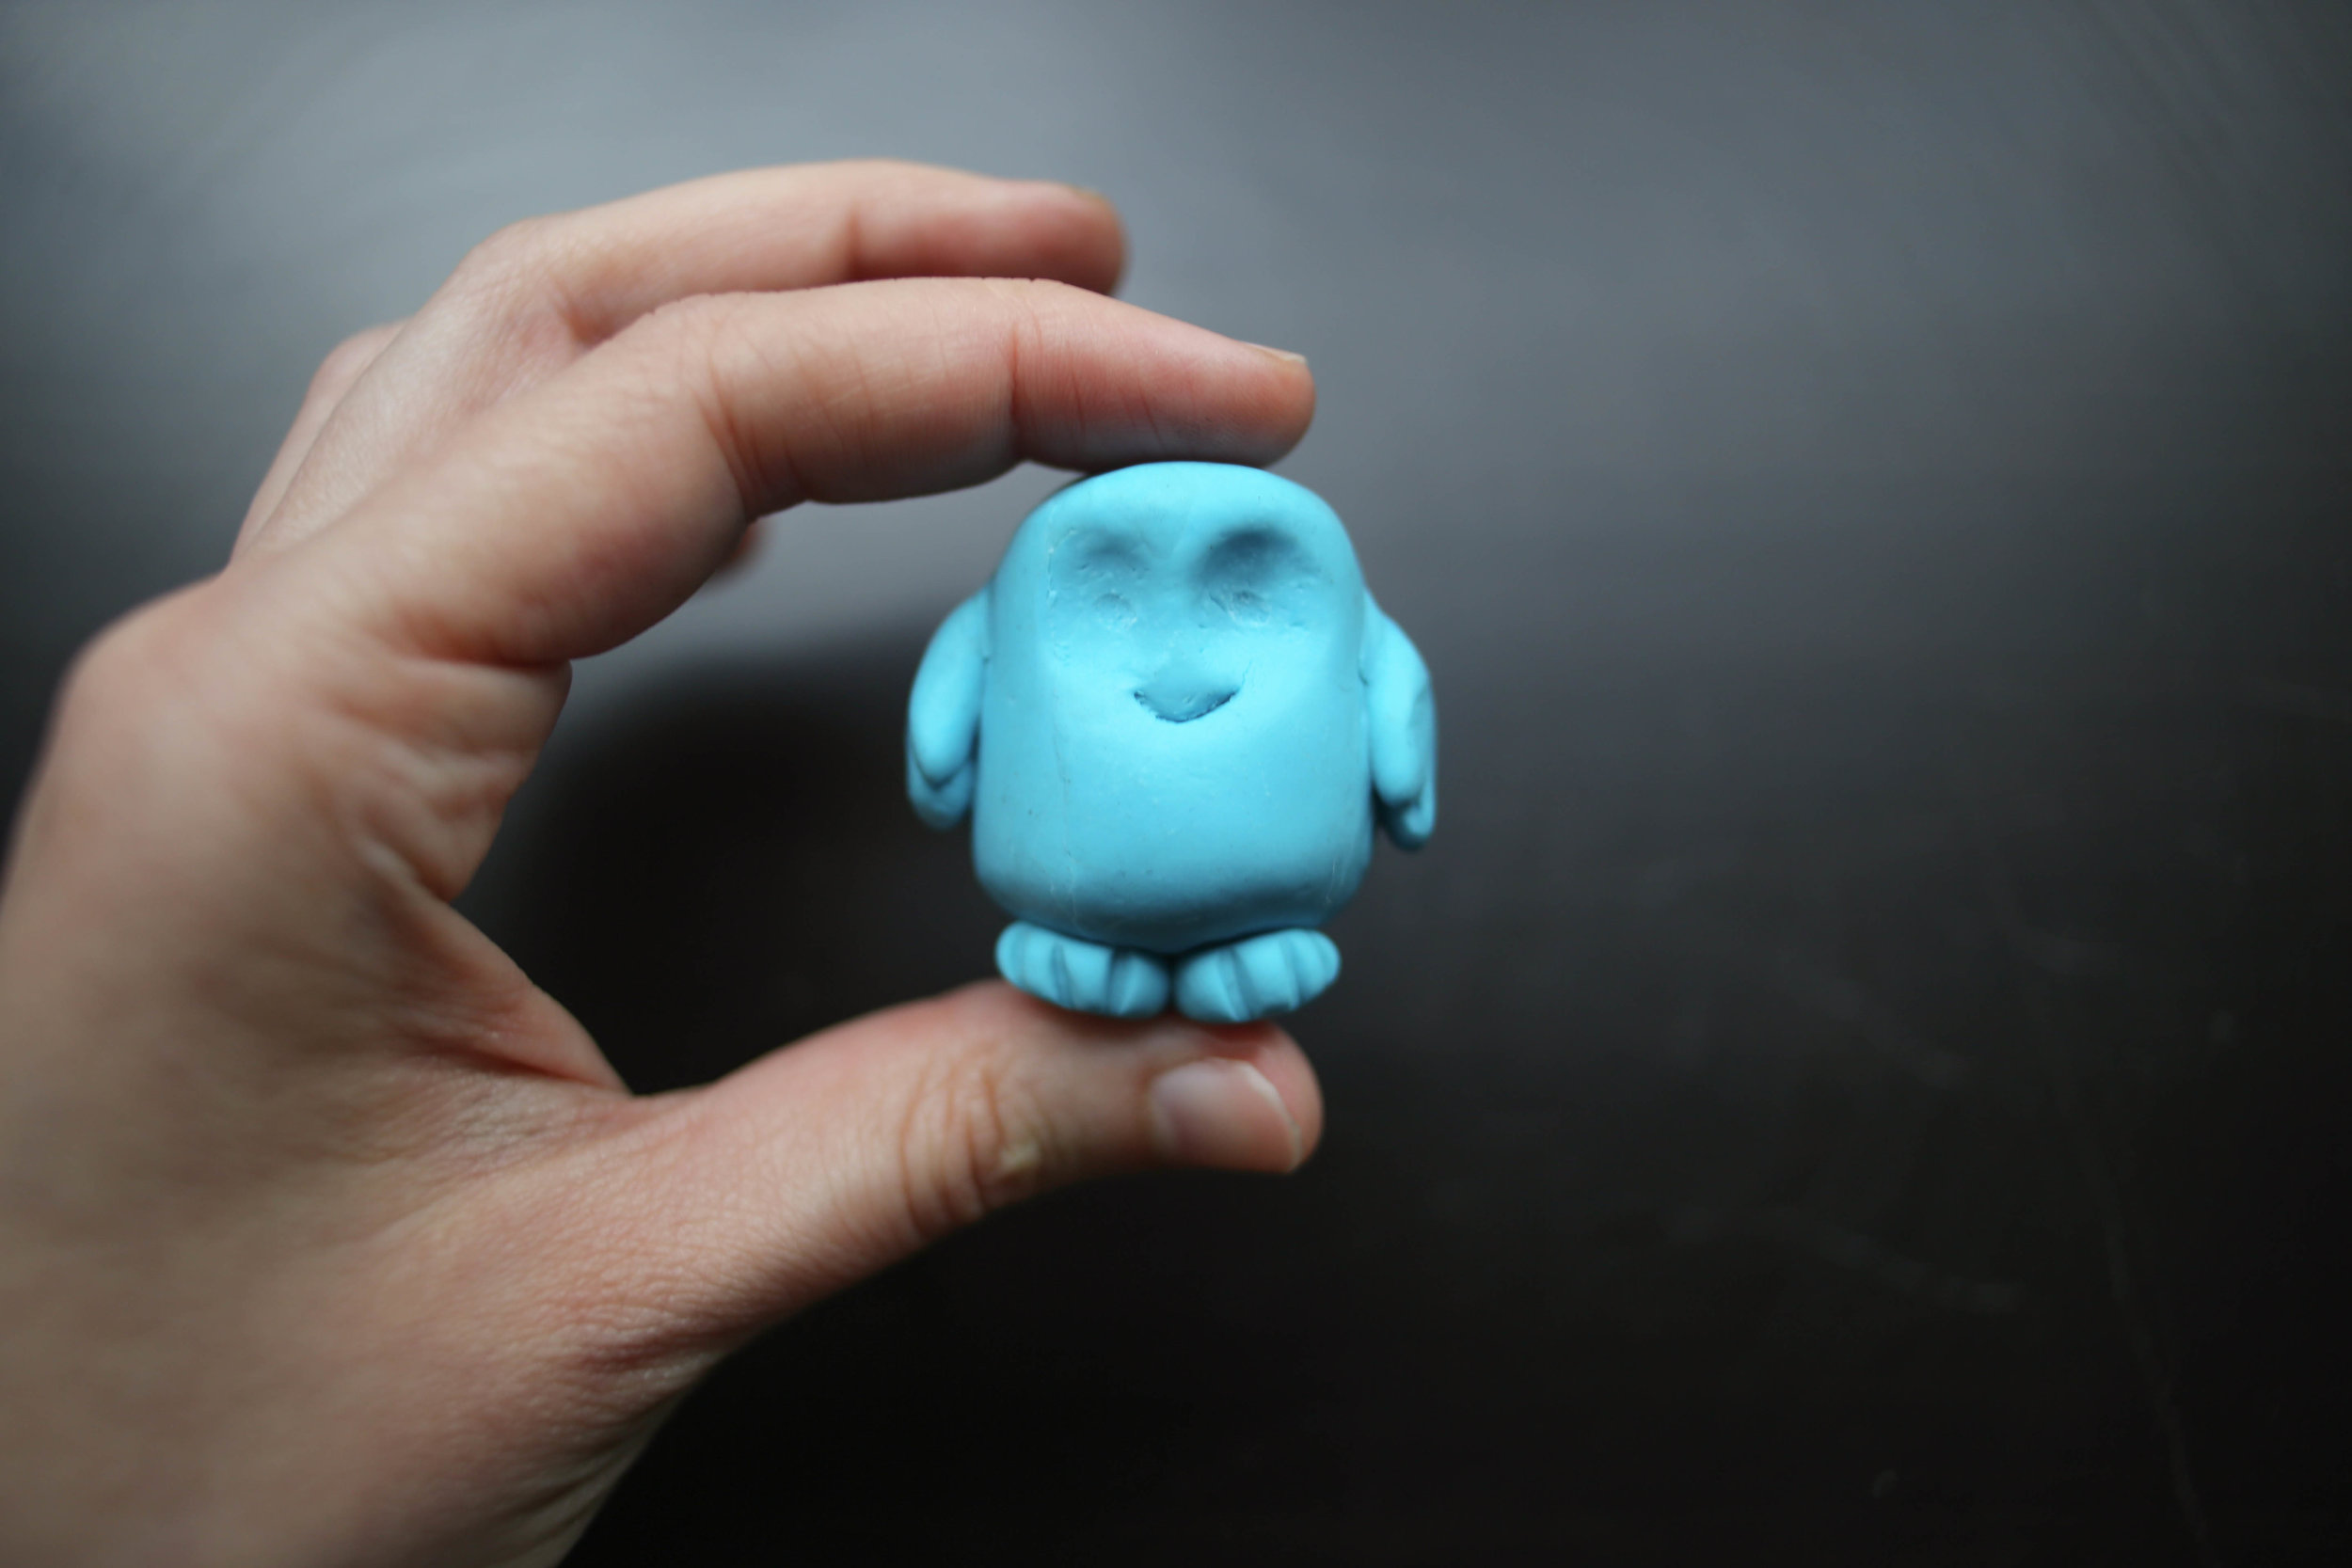 This little adipose is going to make a cute marshmallow someday.